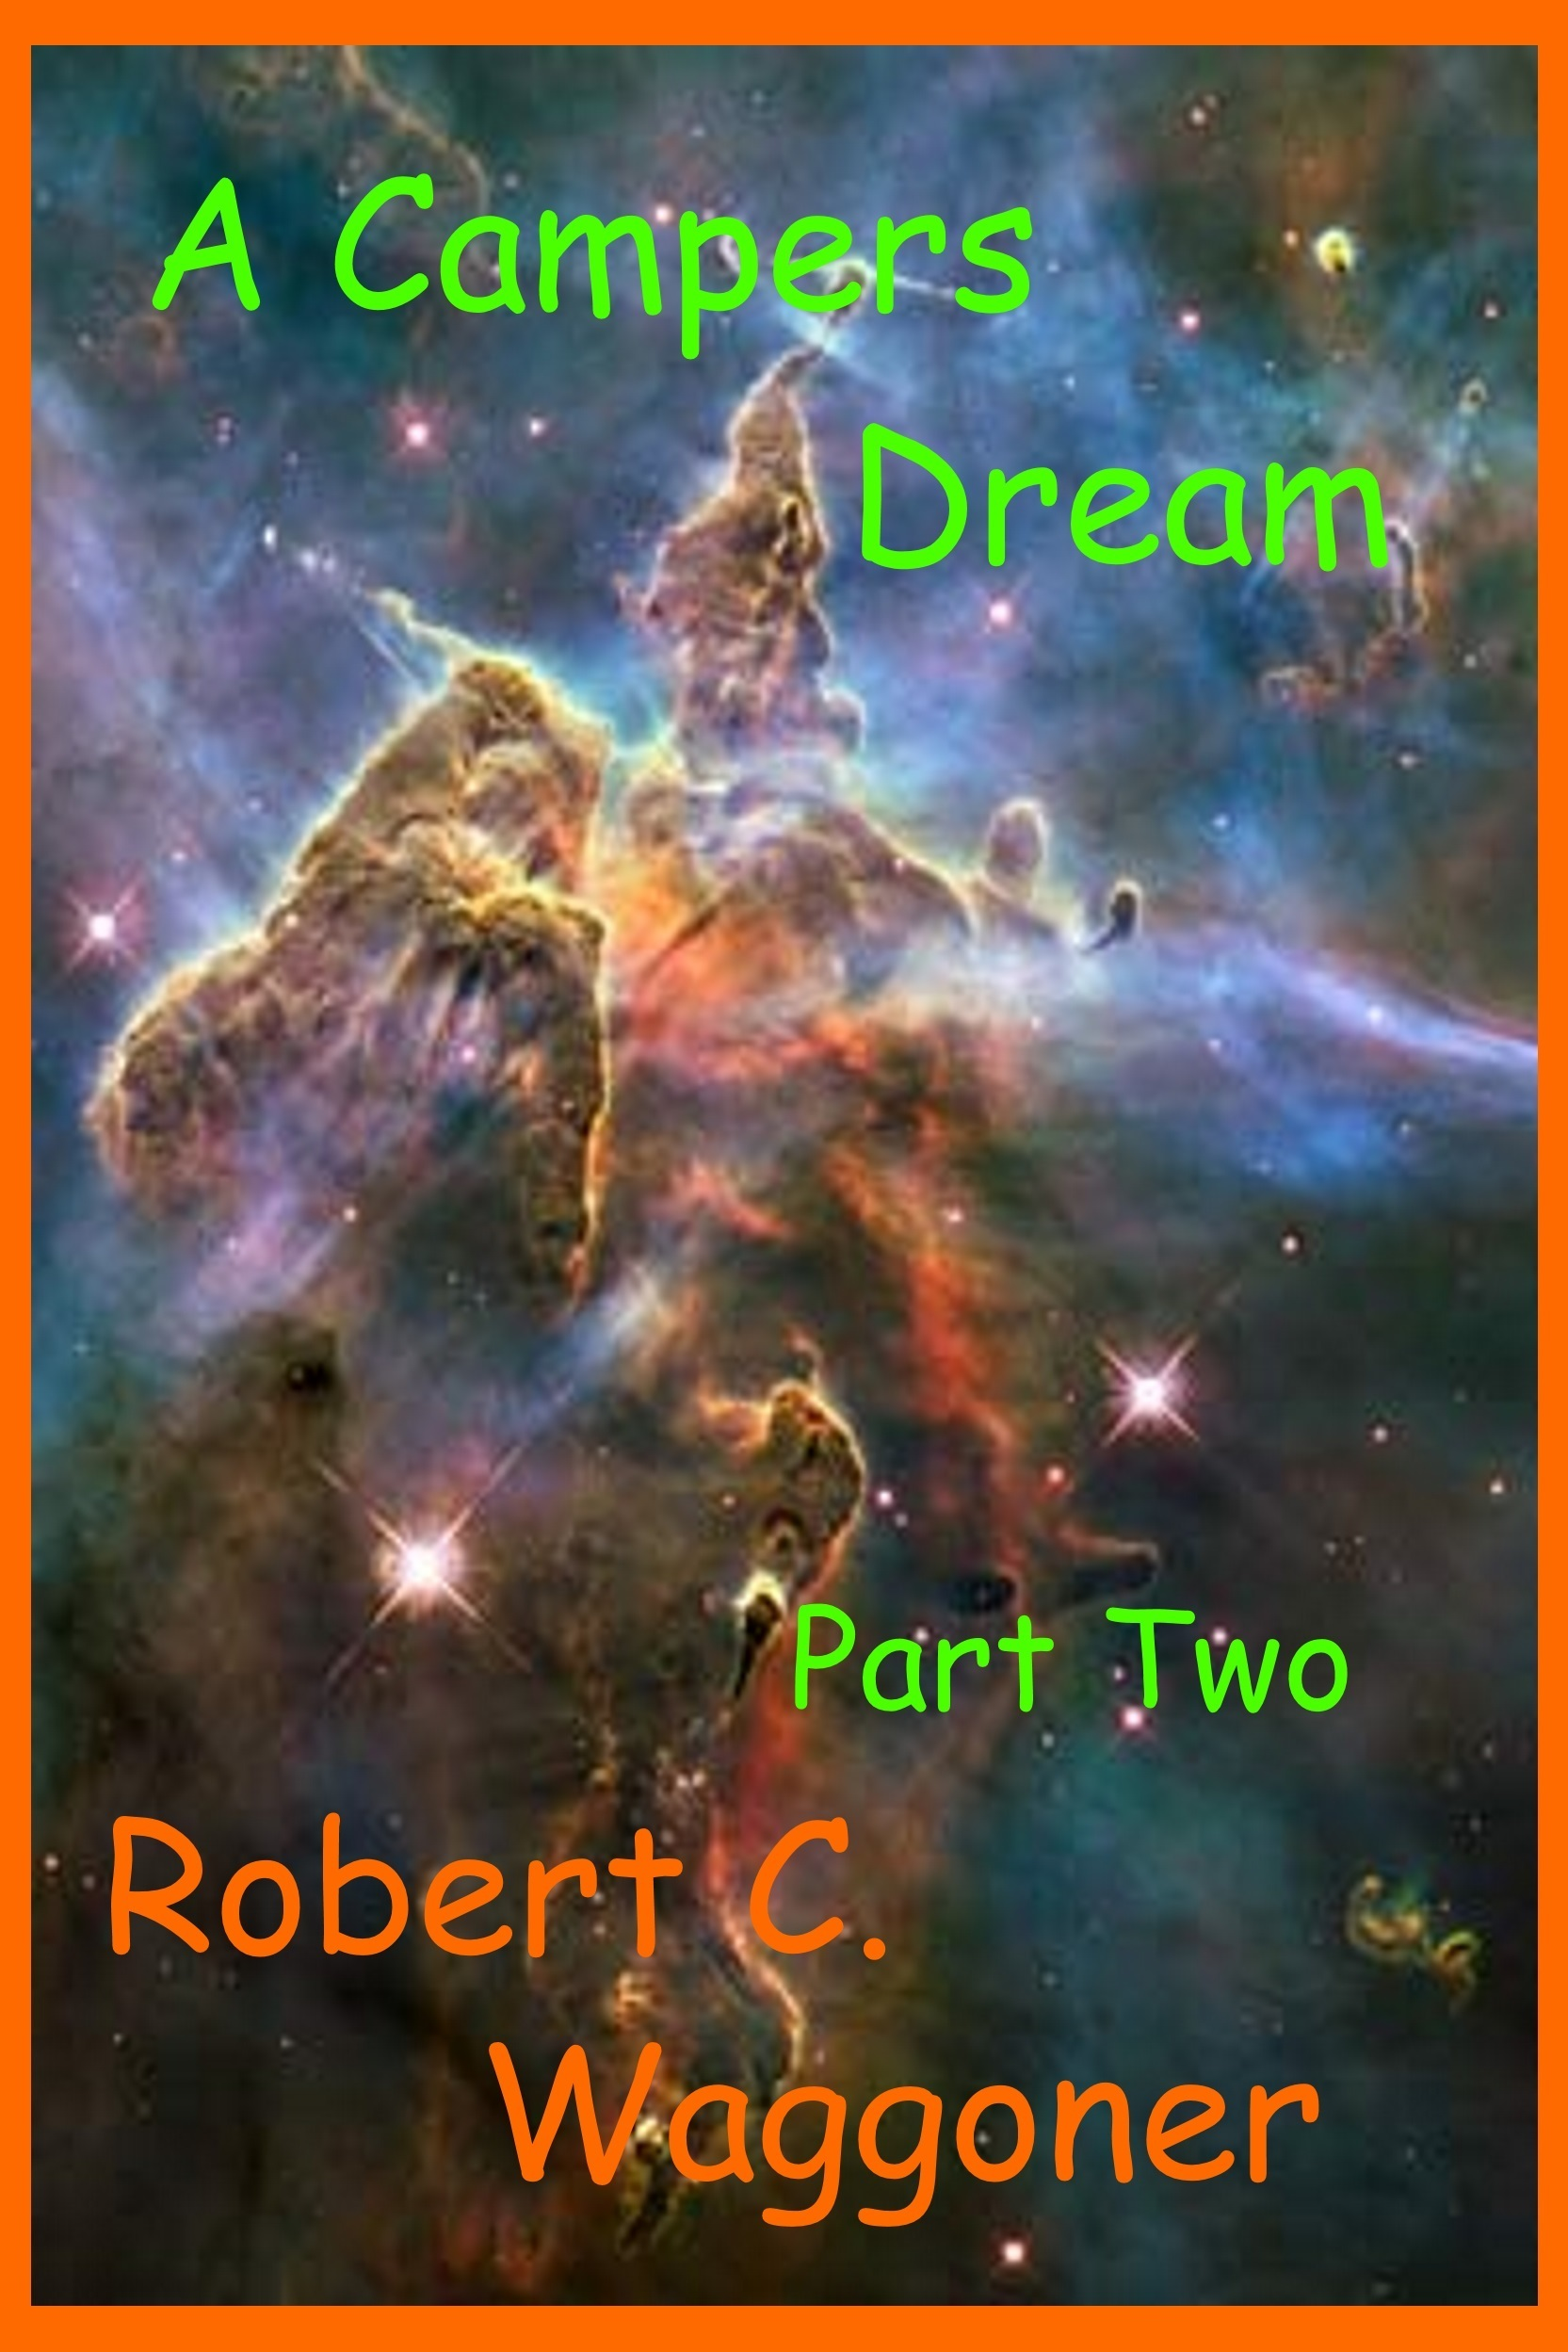 A Campers Dream Part Two Robert C. Waggoner